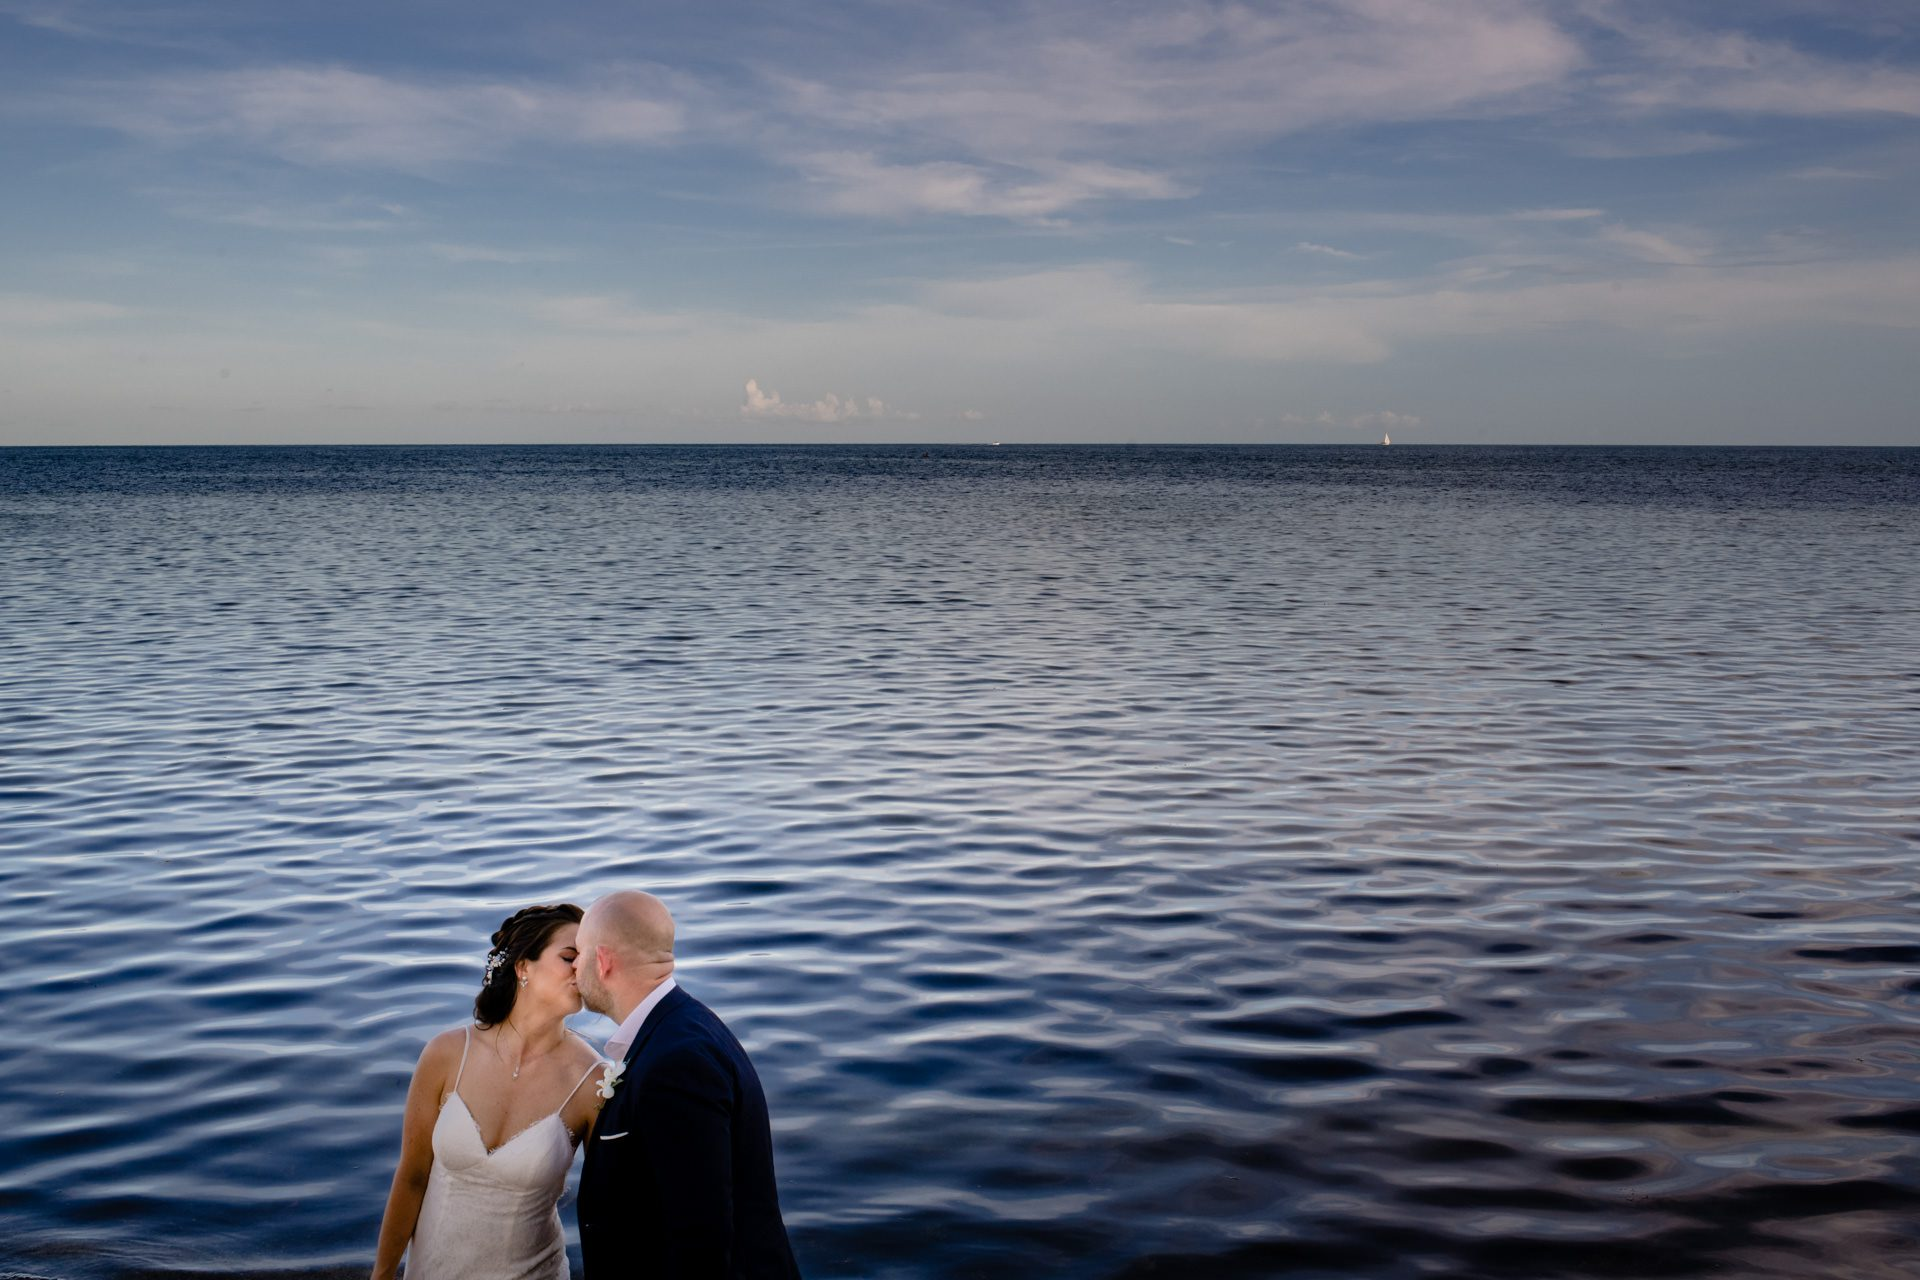 Bride and groom kissing with the ocean in the background in key west.